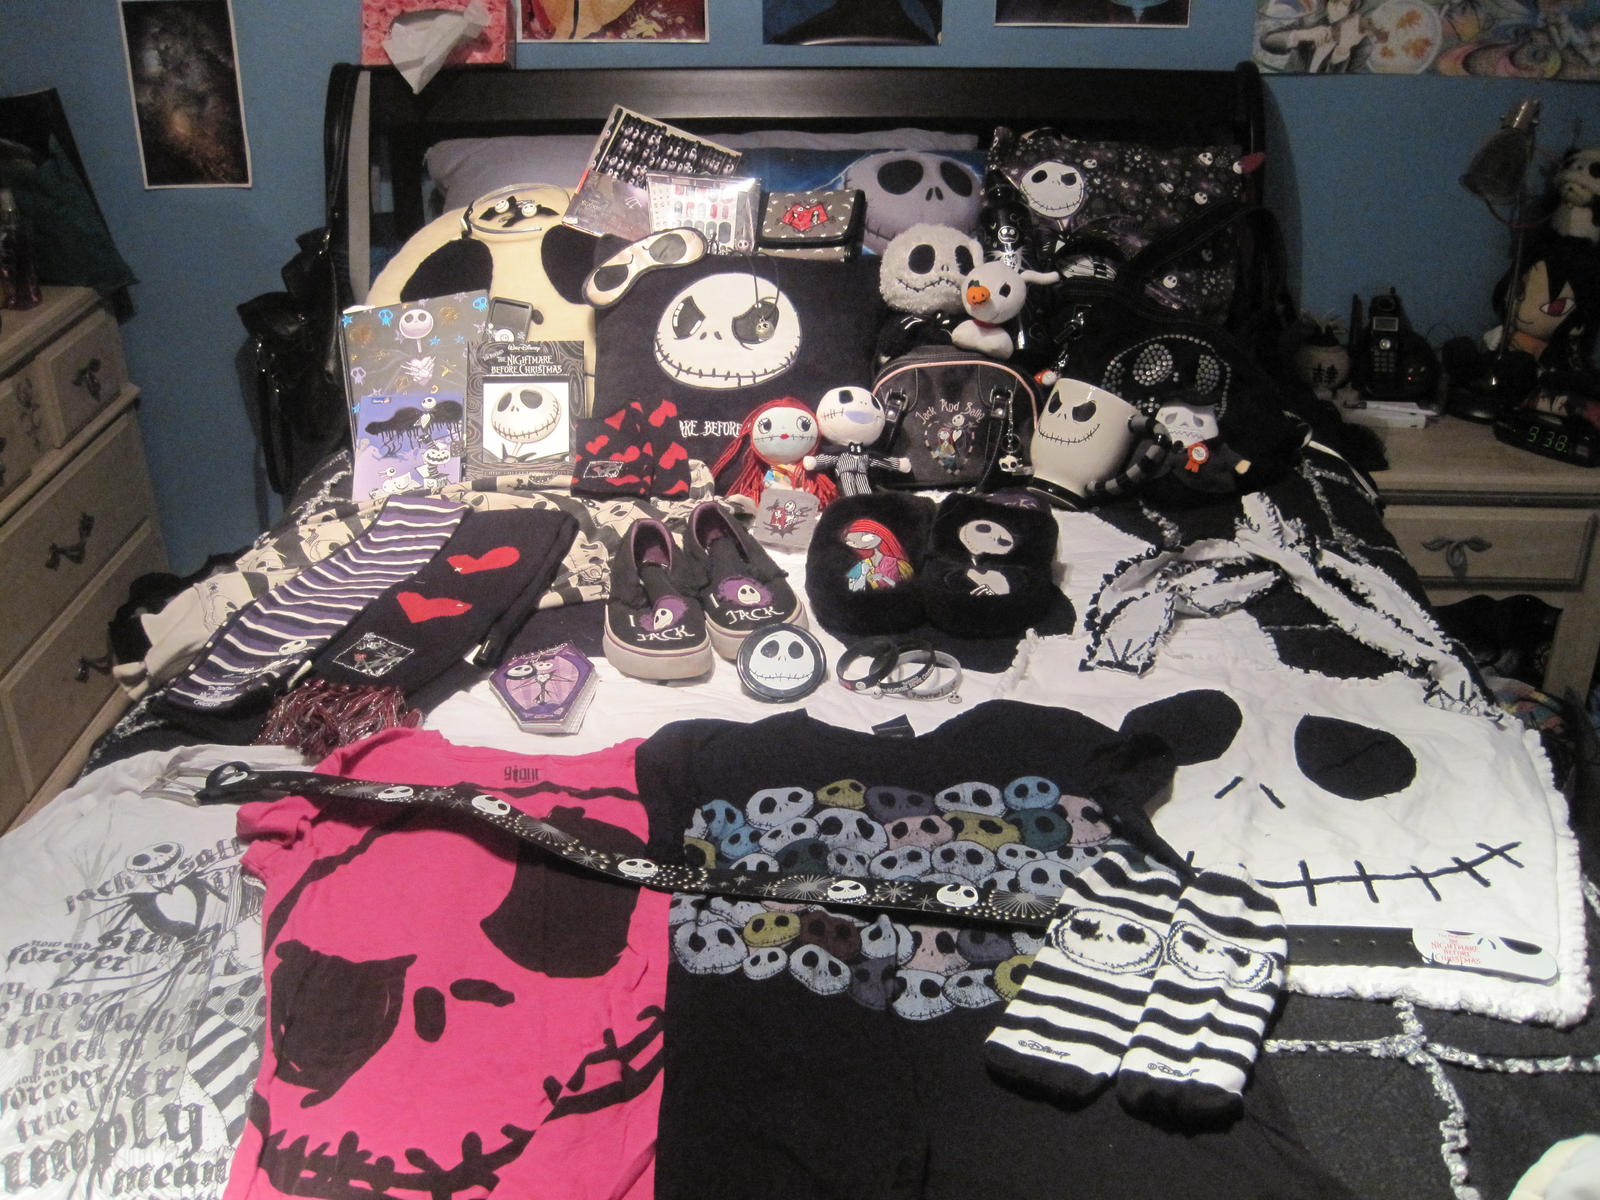 Nightmare Before Christmas Bedroom Decor My Nightmare Before Christmas Collection By Ringo101 On Deviantart